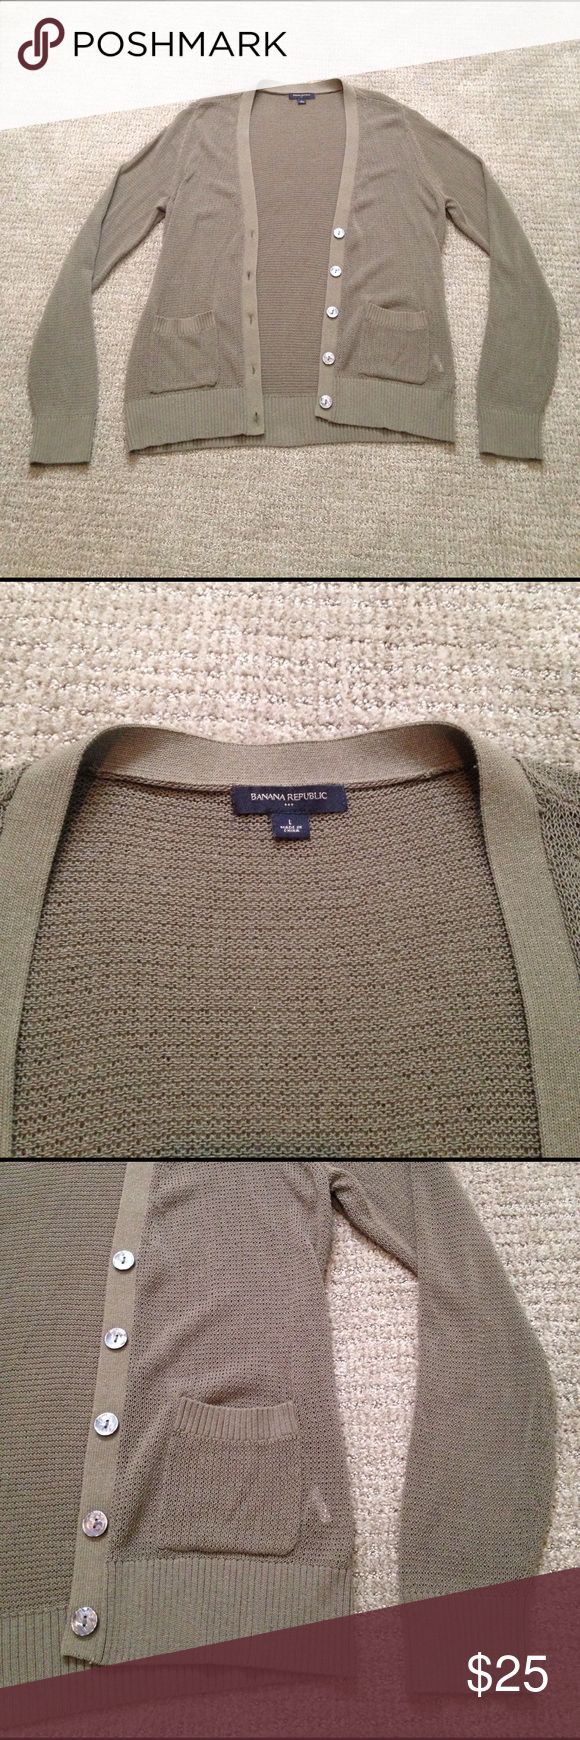 Banana Republic Olive green Cardigan like NEW!! This Cardigan is a loose knit so the perfect Cardigan for Spring and Summer. Has cool oversized buttons and pockets!! EUC wish this one fit me! Banana Republic Sweaters Cardigans